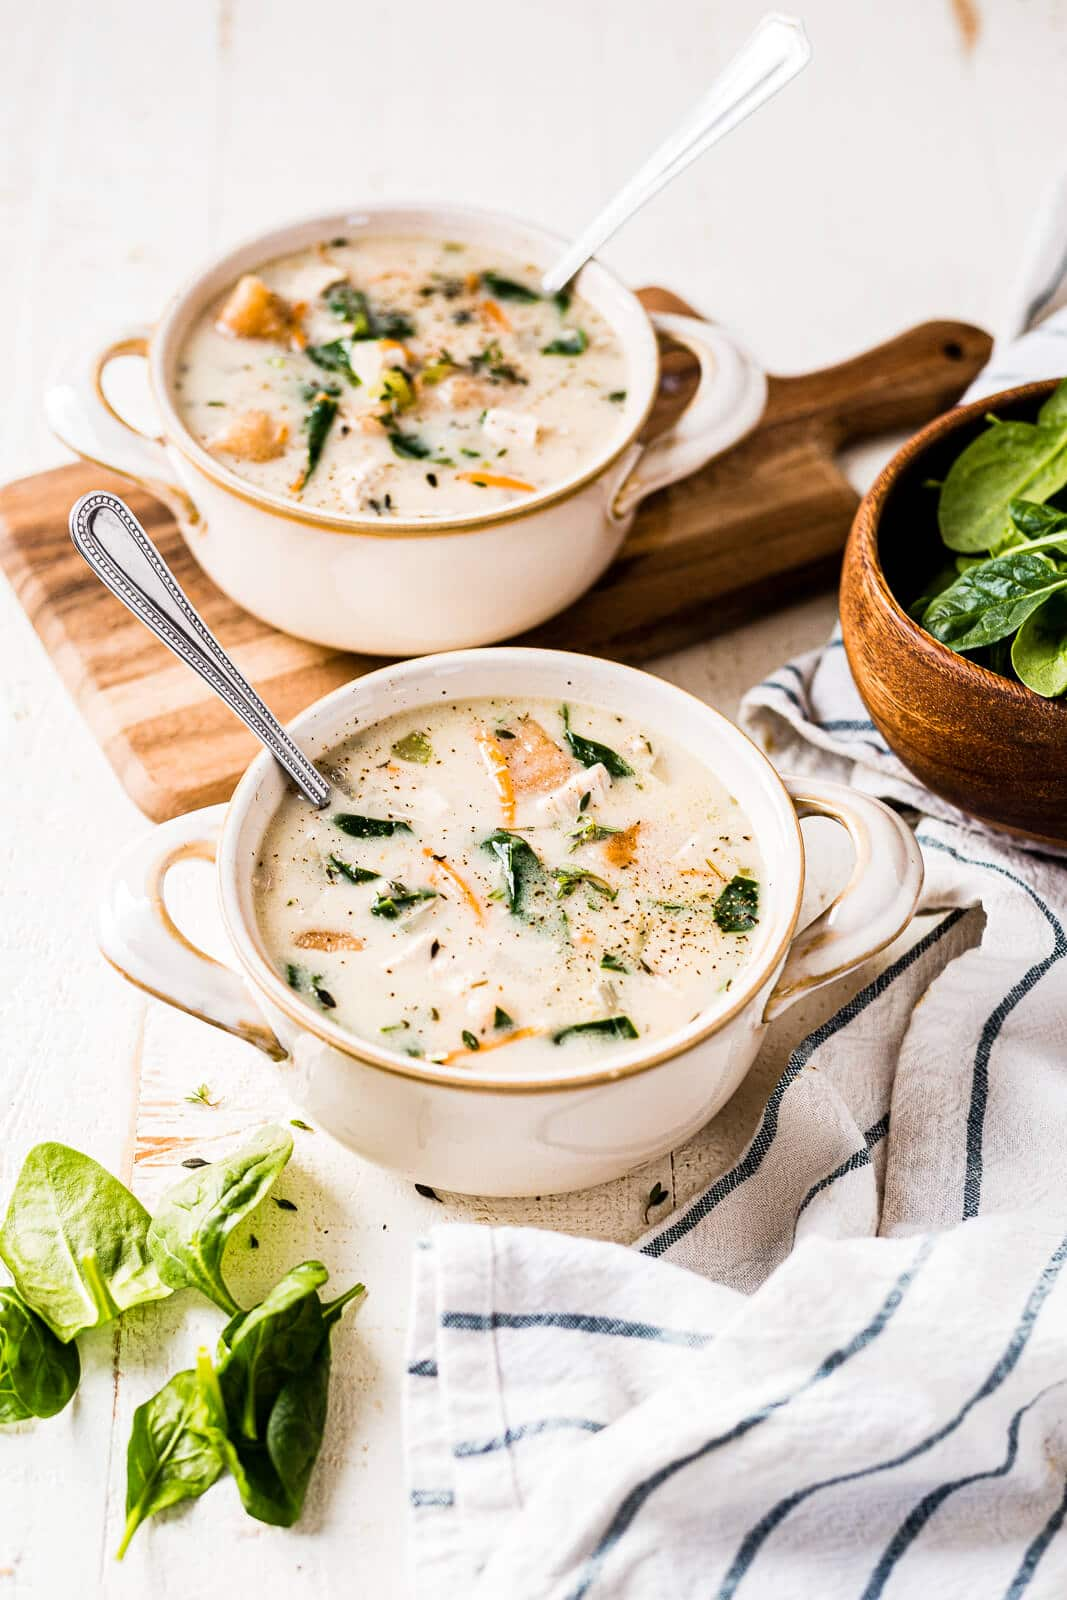 two bowls of copycat olive garden chicken gnocchi soup in bowl with spoons and a blue and white striped napkin next to them